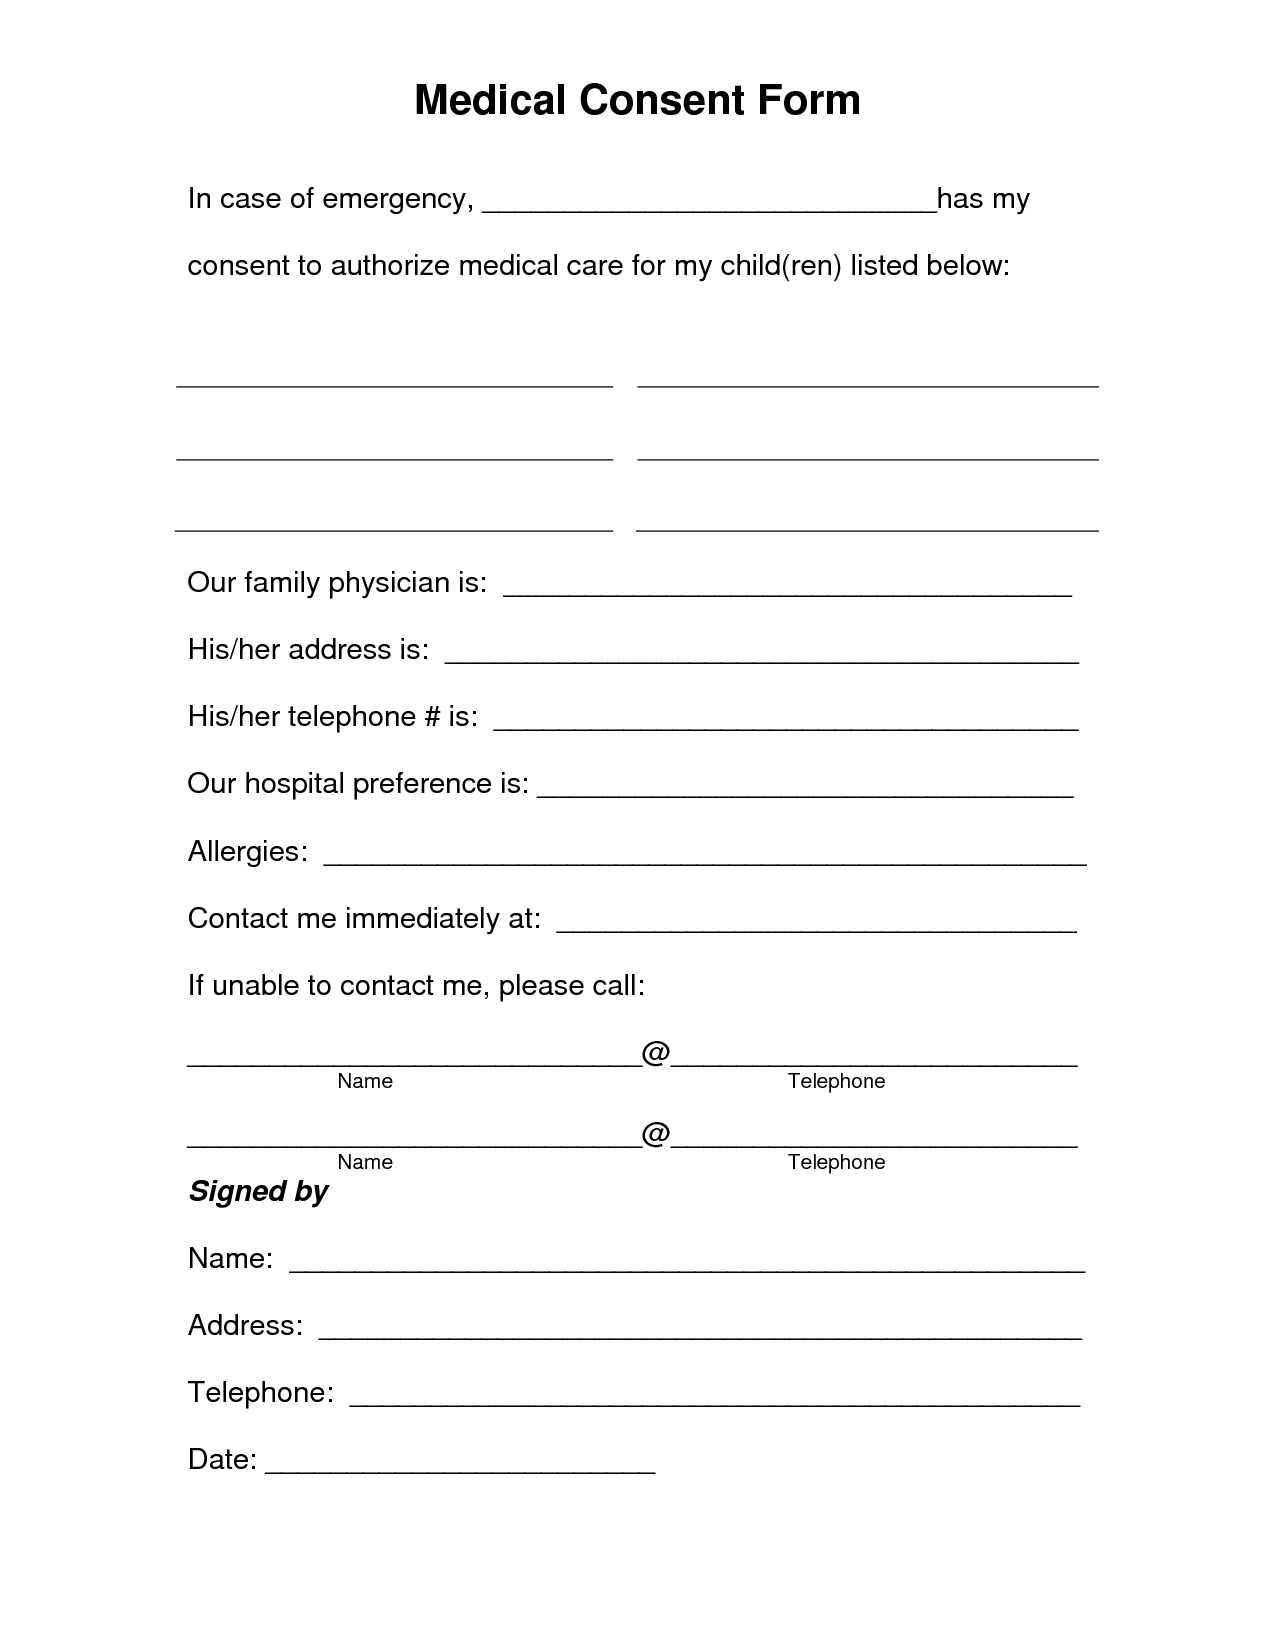 Free Printable Medical Consent Form | Free Medical Consent Form